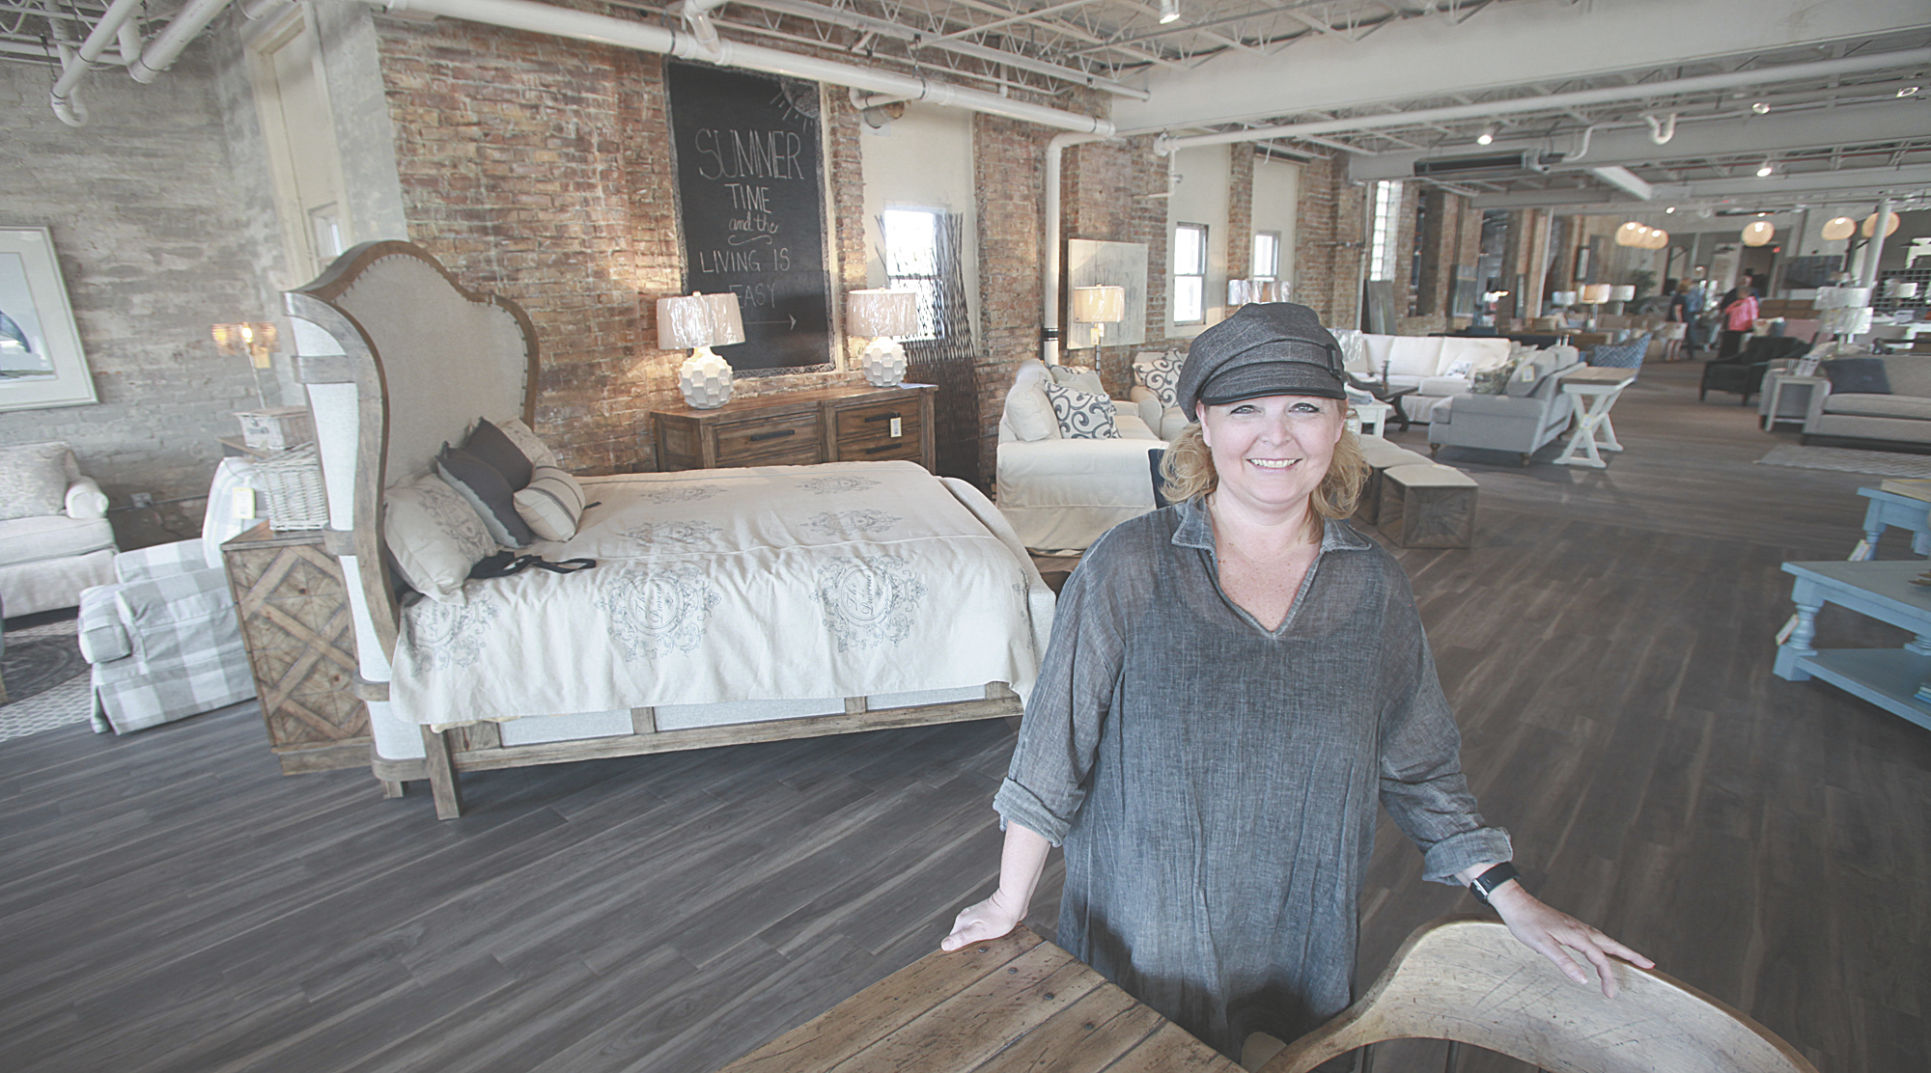 Stacie Hegg Welcomed Customers To Heggu0027s Gallery Of Fine Furniture In  Downtown Ludington Thursday. The Heggu0027s Are Planning To Hold A Grand  Opening Later In ...